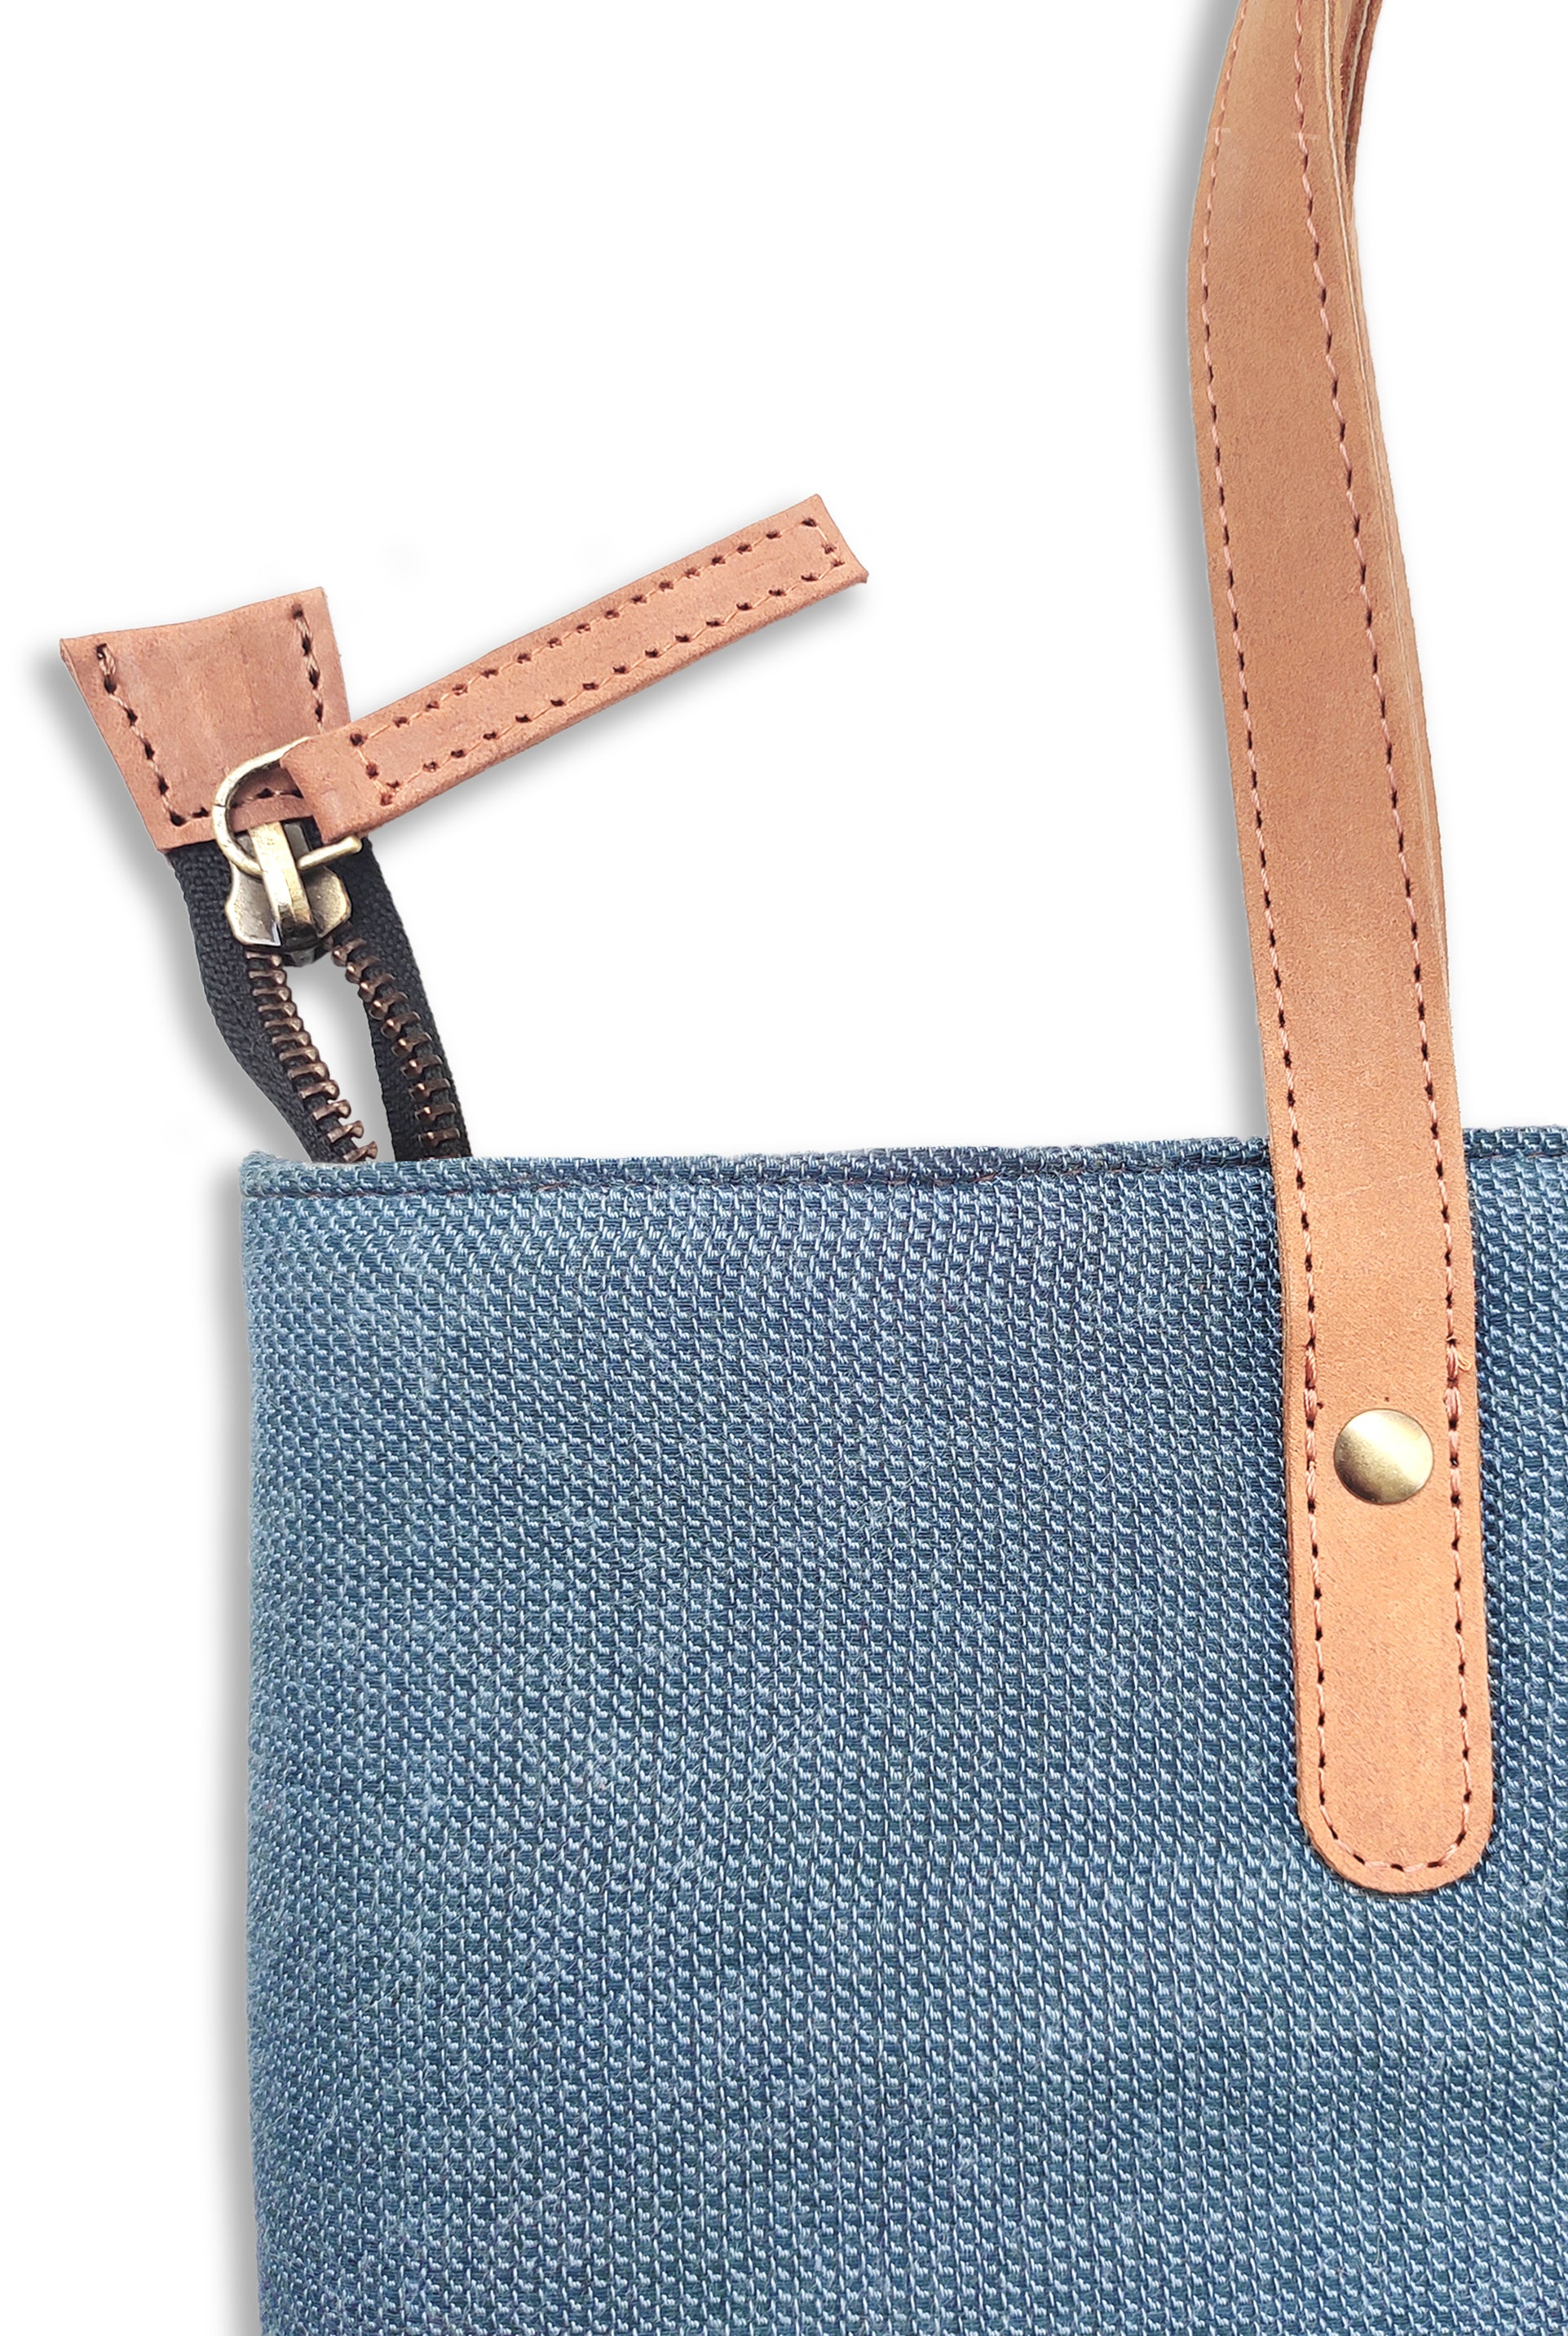 Cotton Blue Tote Bag with Leather Handle